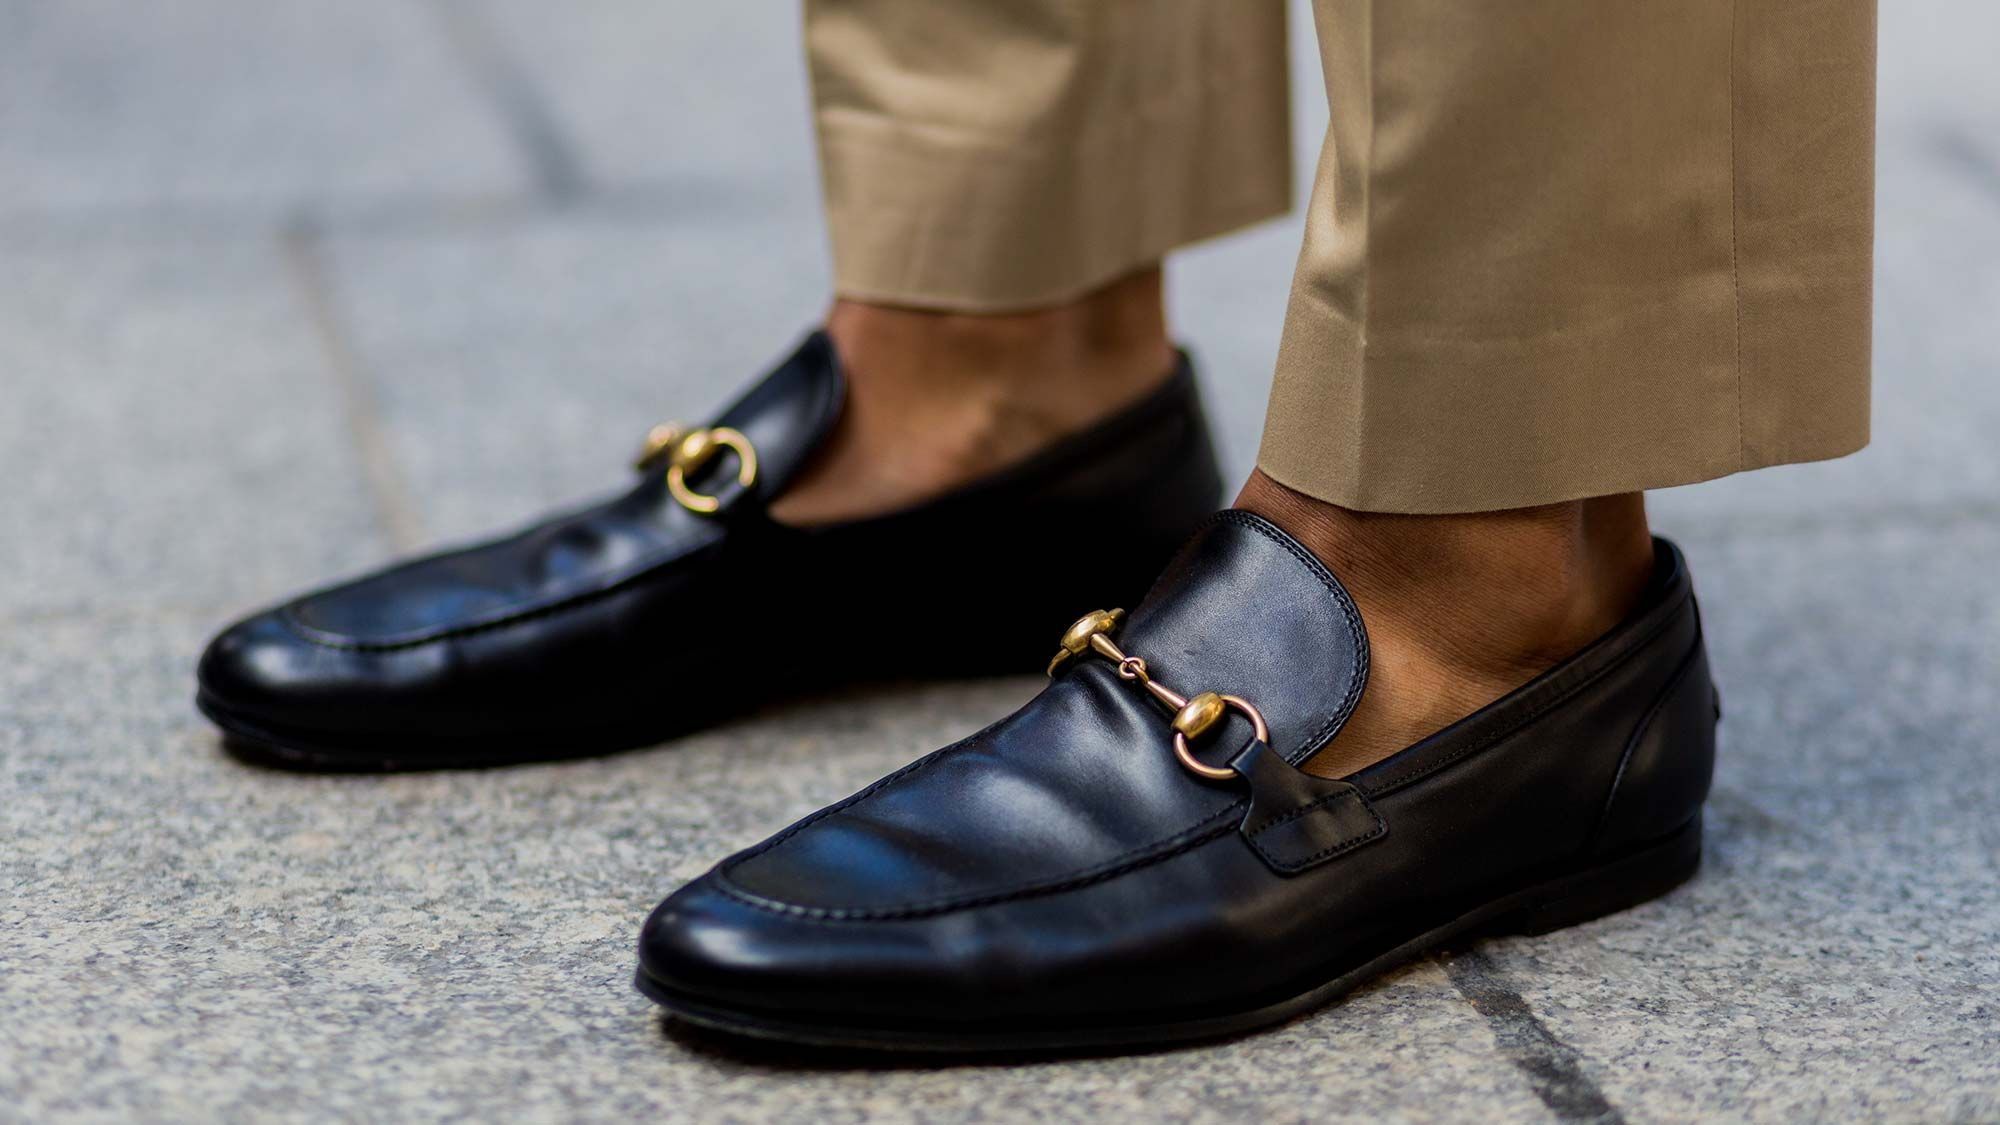 Pin on Men's Style and Fashion